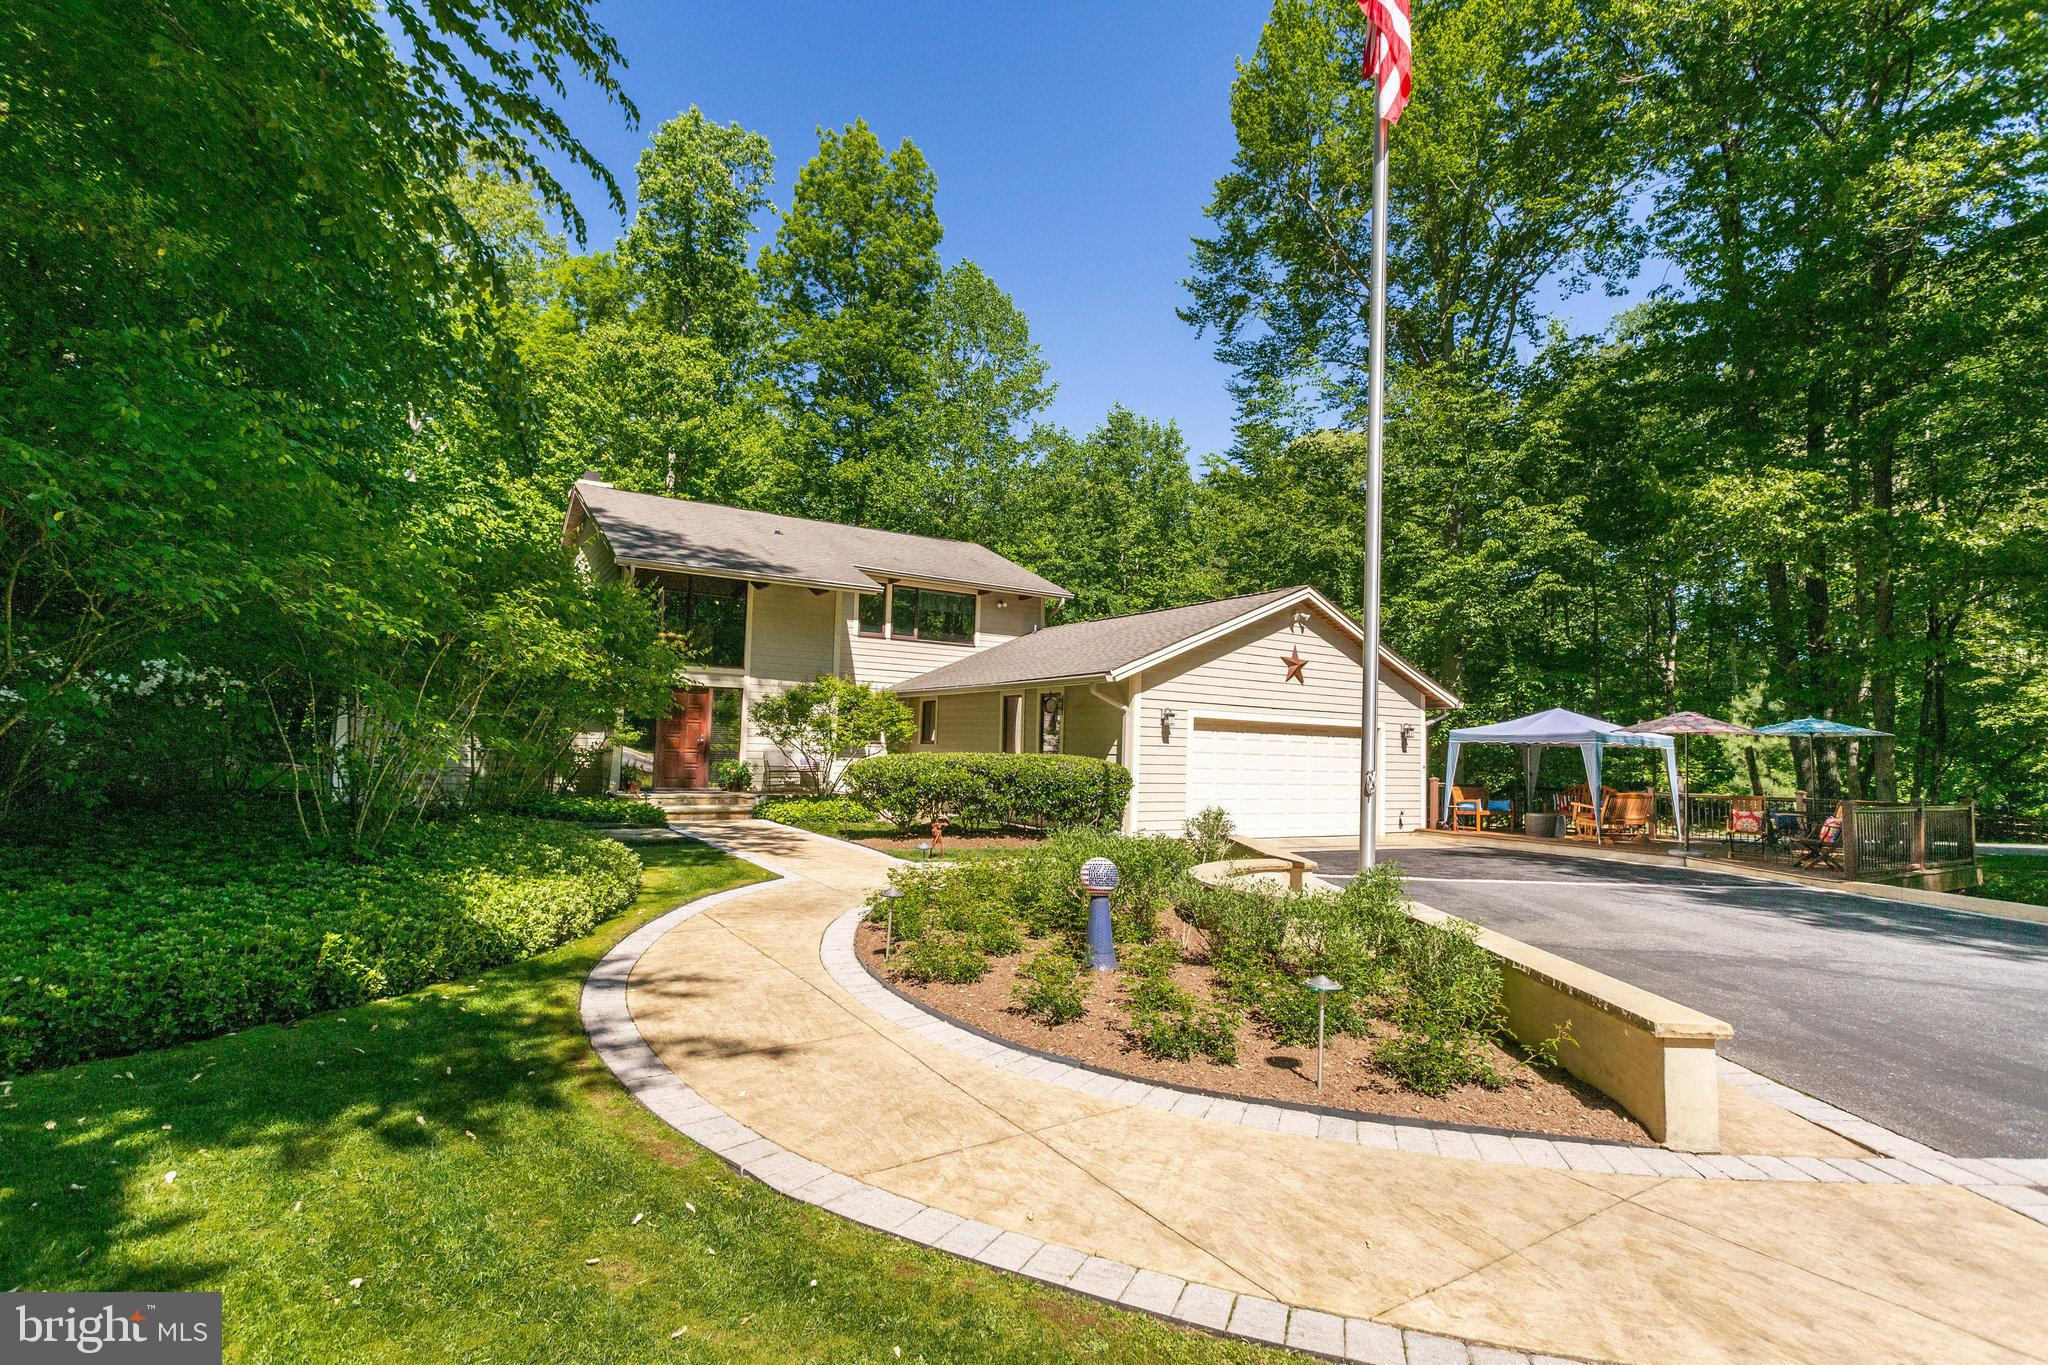 This beautiful home is in the PERFECT LOCATION!  You're only 6 minutes from the mall and only 12 minutes from downtown Annapolis.  Get to BWI Airport in 20 minutes.   Yet you feel like you're far away from the city. Privacy,  backing up to trees, so you have plenty of room to stretch out and be you!  Perfect for entertaining with 2 separate decks ( one is screened and under roof) and a separate patio.  Beautiful hardscaping in the front, back and sides of your yard, yet really thought out and designed to be low maintenance.  The night scaping makes your home stand out even in the evening hours!   On the interior, walk in to gleaming hardwood floors.  You will notice right away the beautiful knotty white pine cathedral ceilings and the large architectural  windows along the back walls and up!  A large gas fireplace in your family room keeps you cozy in winter!  Your kitchen  has more modern wood cabinets with newer appliances ( 3 yrs )  and a huge island you can sit around and tell the cook how you'd like your food prepared!  Your dining room flows easily from the family room into the kitchen.  Just outside is a covered deck with festive lights hanging where conversation about everything just comes naturally.  Your primary bedroom and large bath is on the main level  as well as a separate office that is perfect  if you're working from home.  Two extra bedrooms and a full bath are  upstairs along with a sitting area that overlooks the family room.  You really notice the stunning white pine ceilings here!   Downstairs in the lower level has been perfect for the teenager/ college students who need their own space.  Partially finished with a large area for a rec room , bedroom & full bath.  They have their own private patio if they need to come up for air in between classes.  Plenty of clean unfinished space for storage or expansion if someone wanted.  There is so much more that you must see!